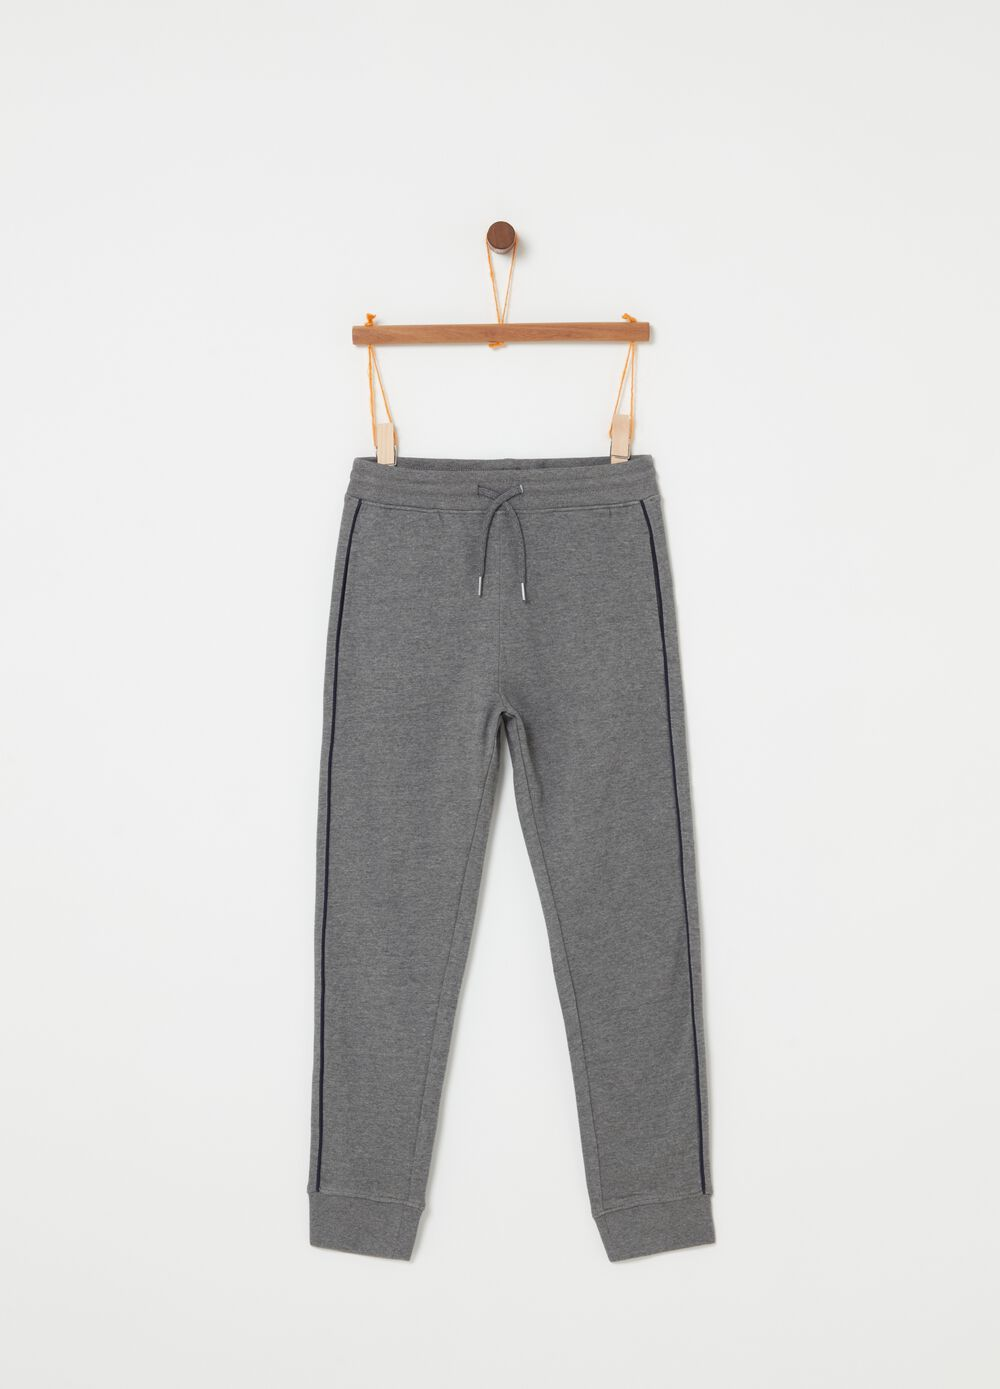 Viscose and cotton fleece trousers